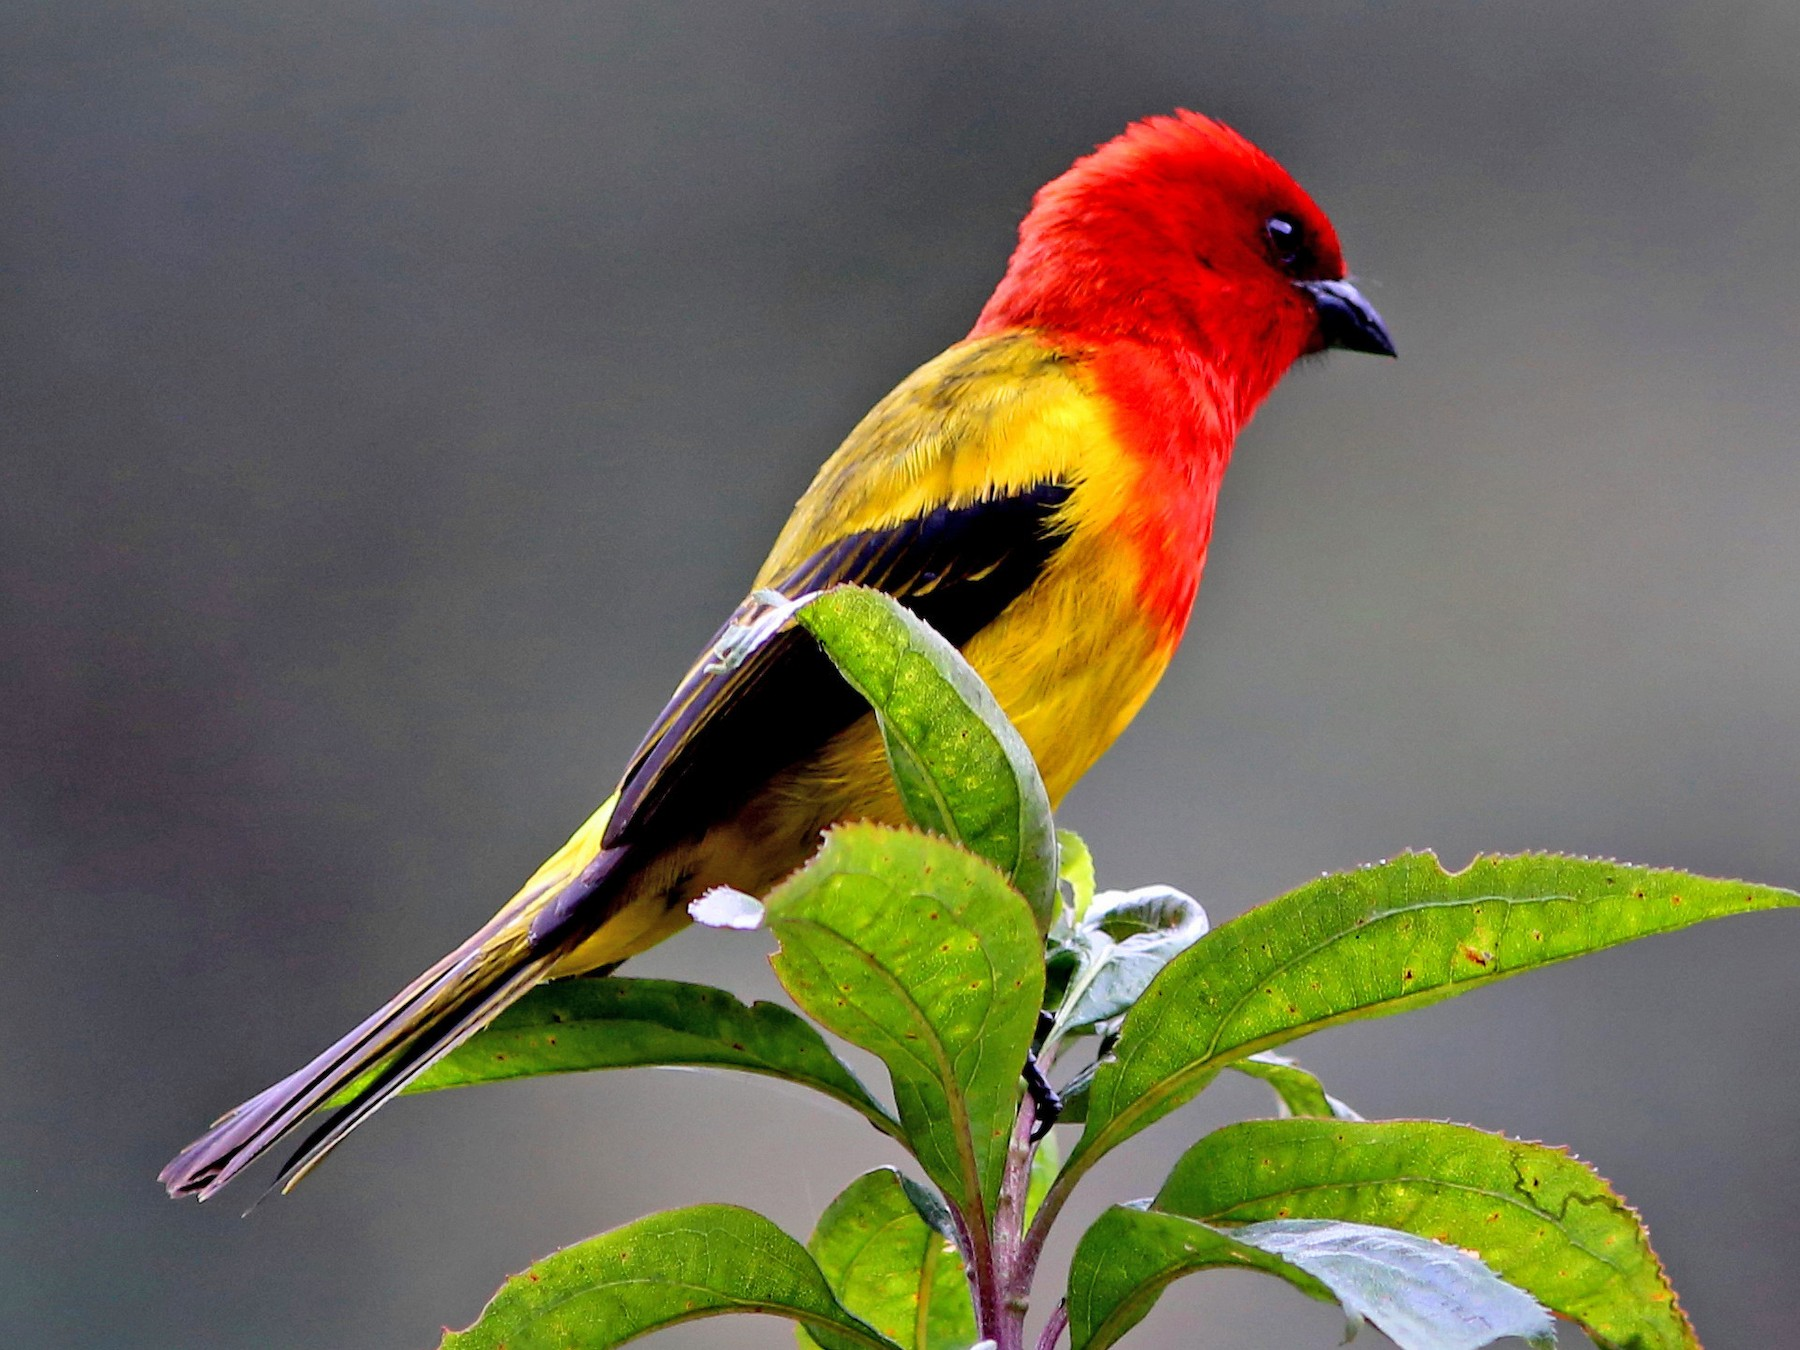 Red-hooded Tanager - Rohan van Twest